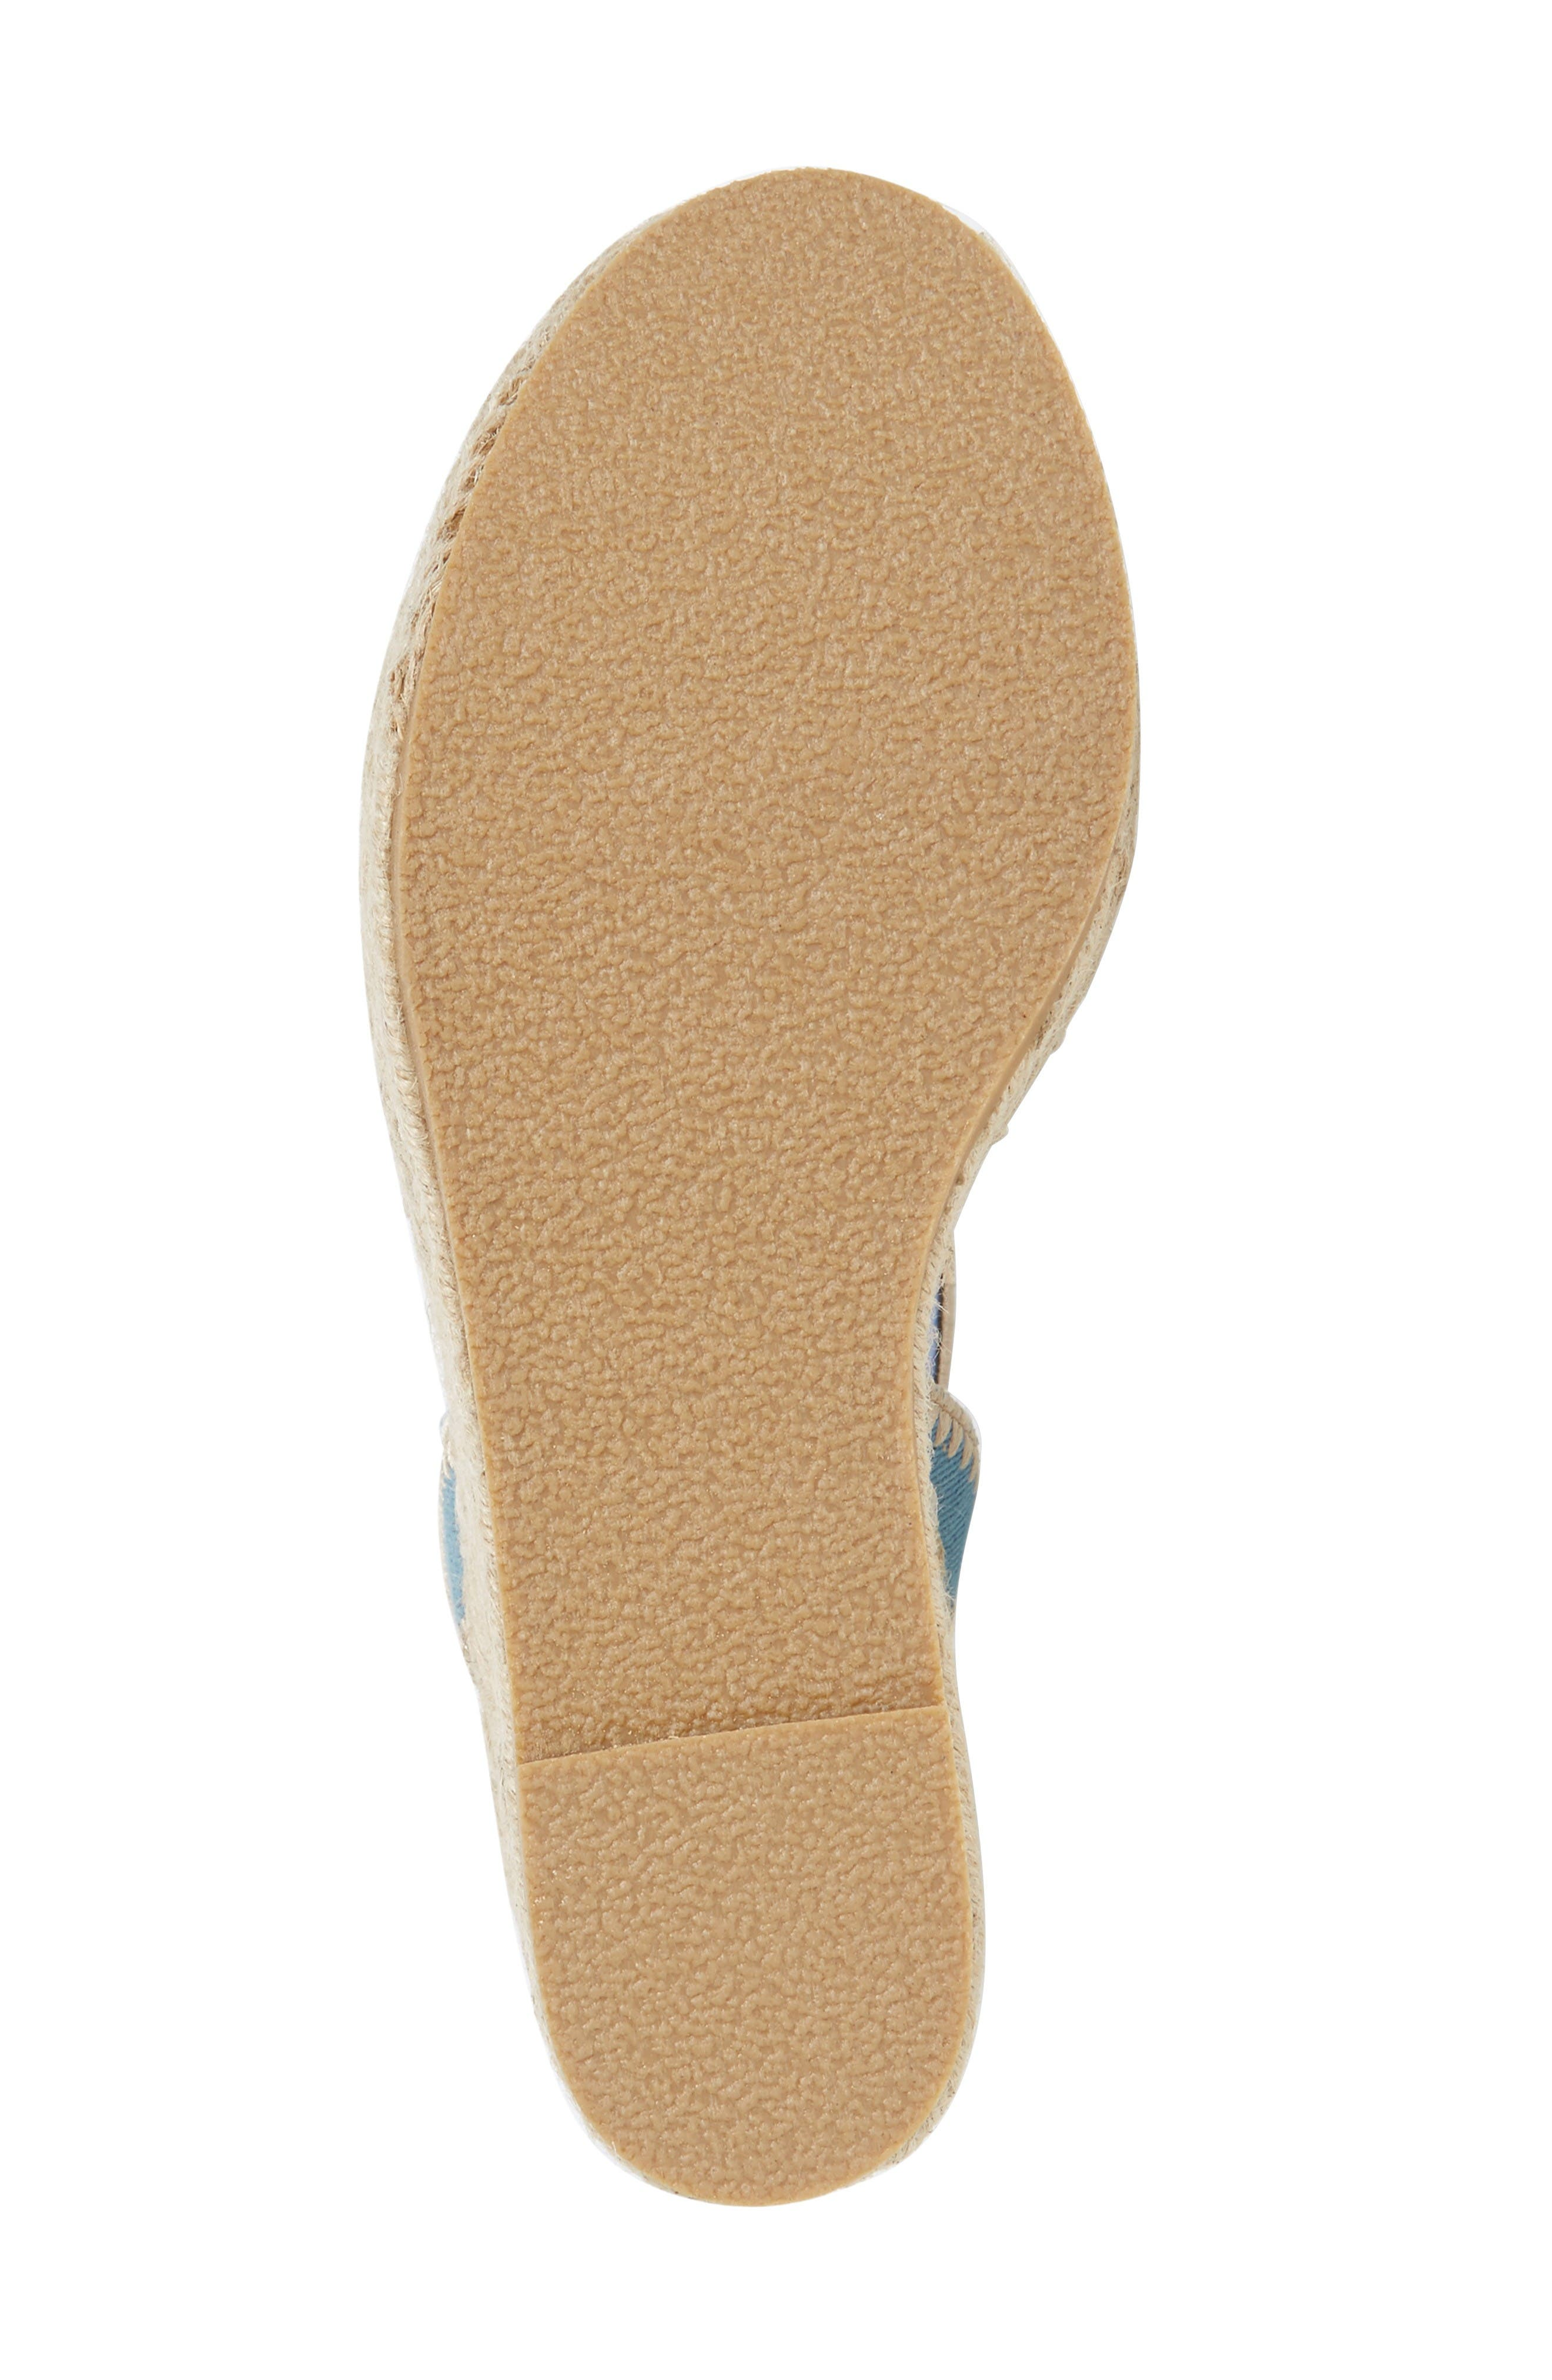 Alternate Image 3  - Coconuts by Matisse Frenchie Wedge Sandal (Women)